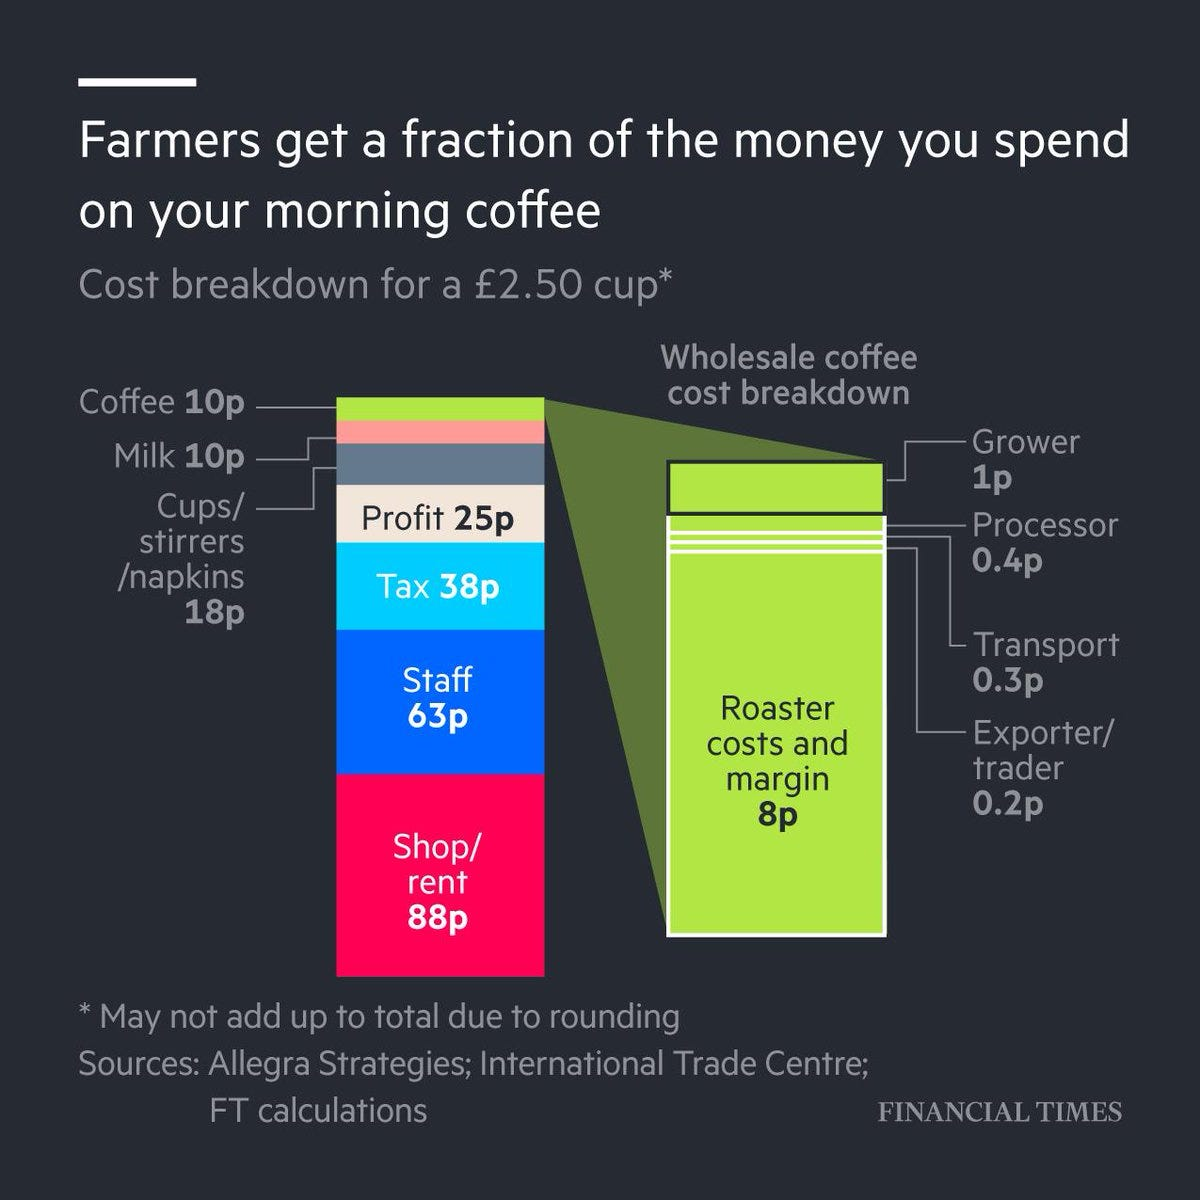 "Financial Times on Twitter: ""In a £2.50 brew, the coffee itself accounts  for just 10p, only a fraction of which goes to the farmer  https://t.co/BvUK4Qakpy… https://t.co/Ehf0ekUKSj"""